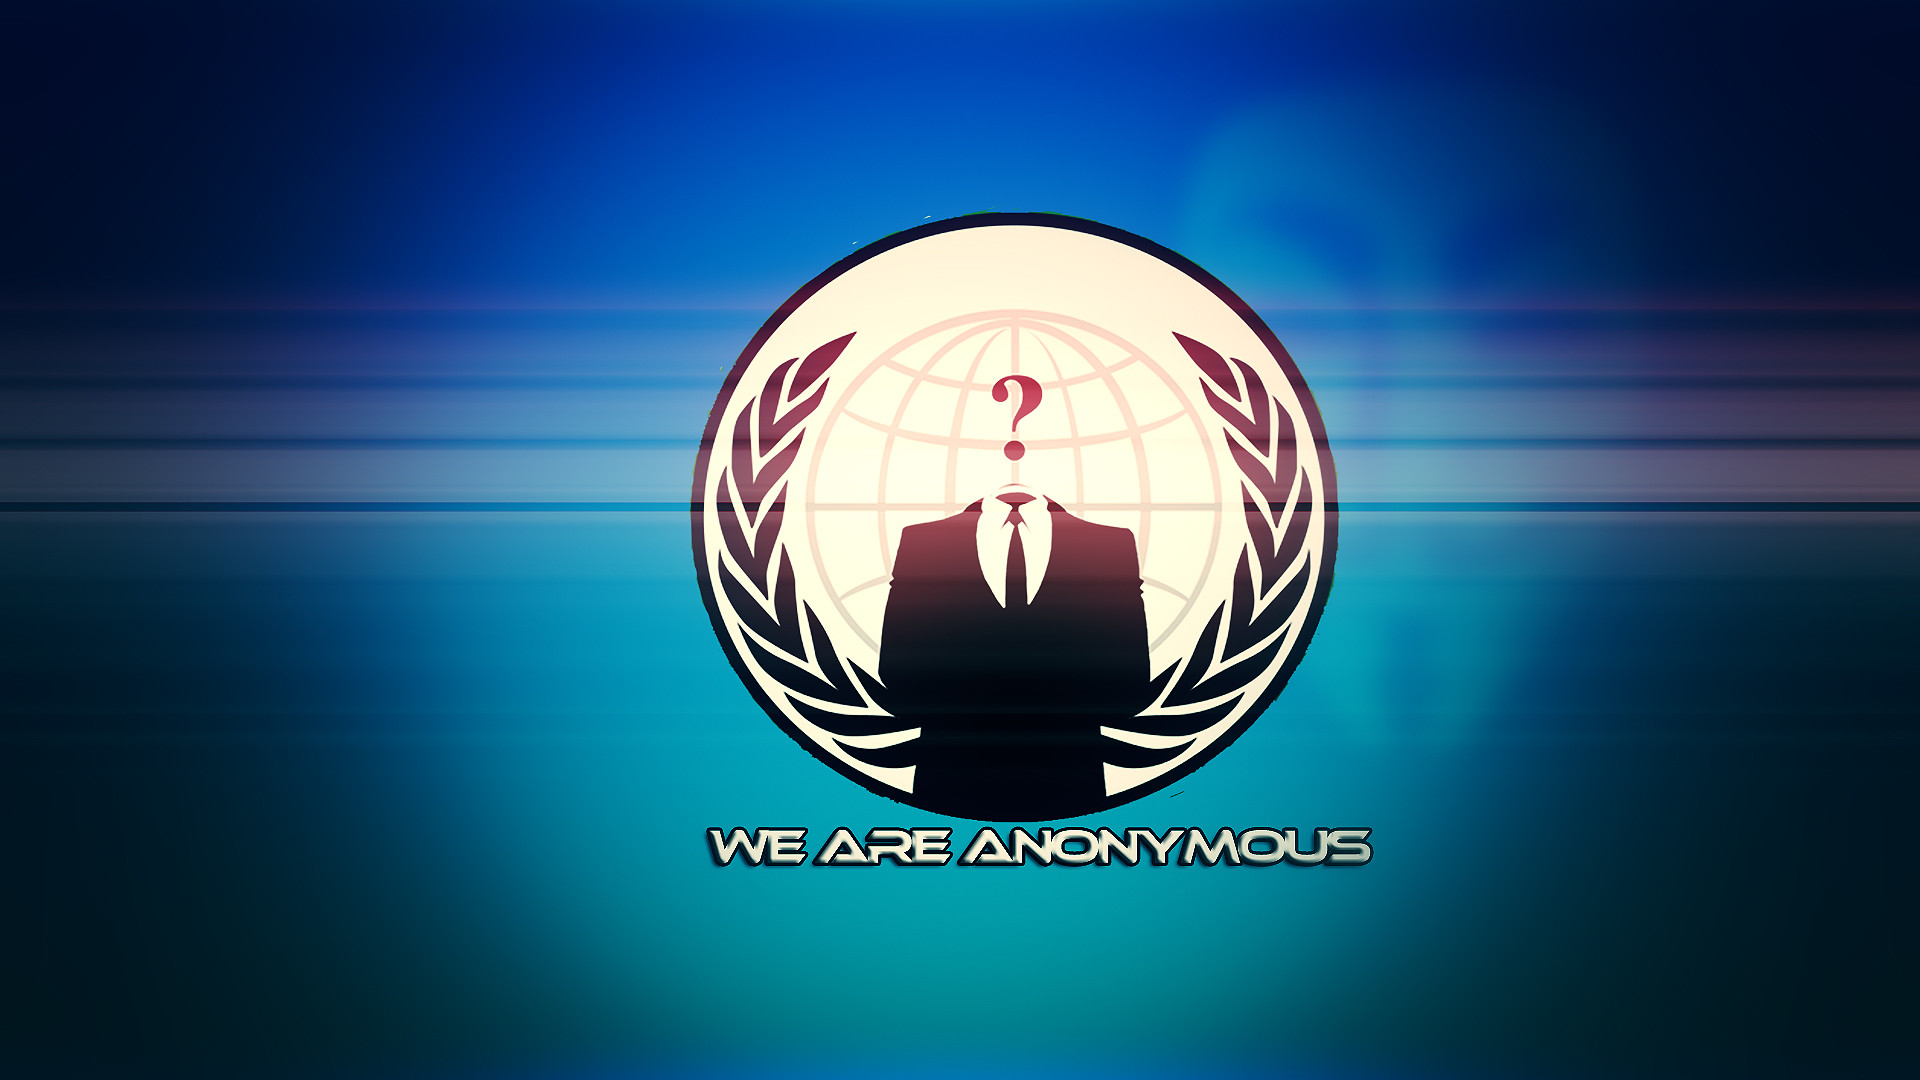 Anonymous Wallpaper Collection For Free Download | HD Wallpapers |  Pinterest | Anonymous, Hd wallpaper and Wallpaper